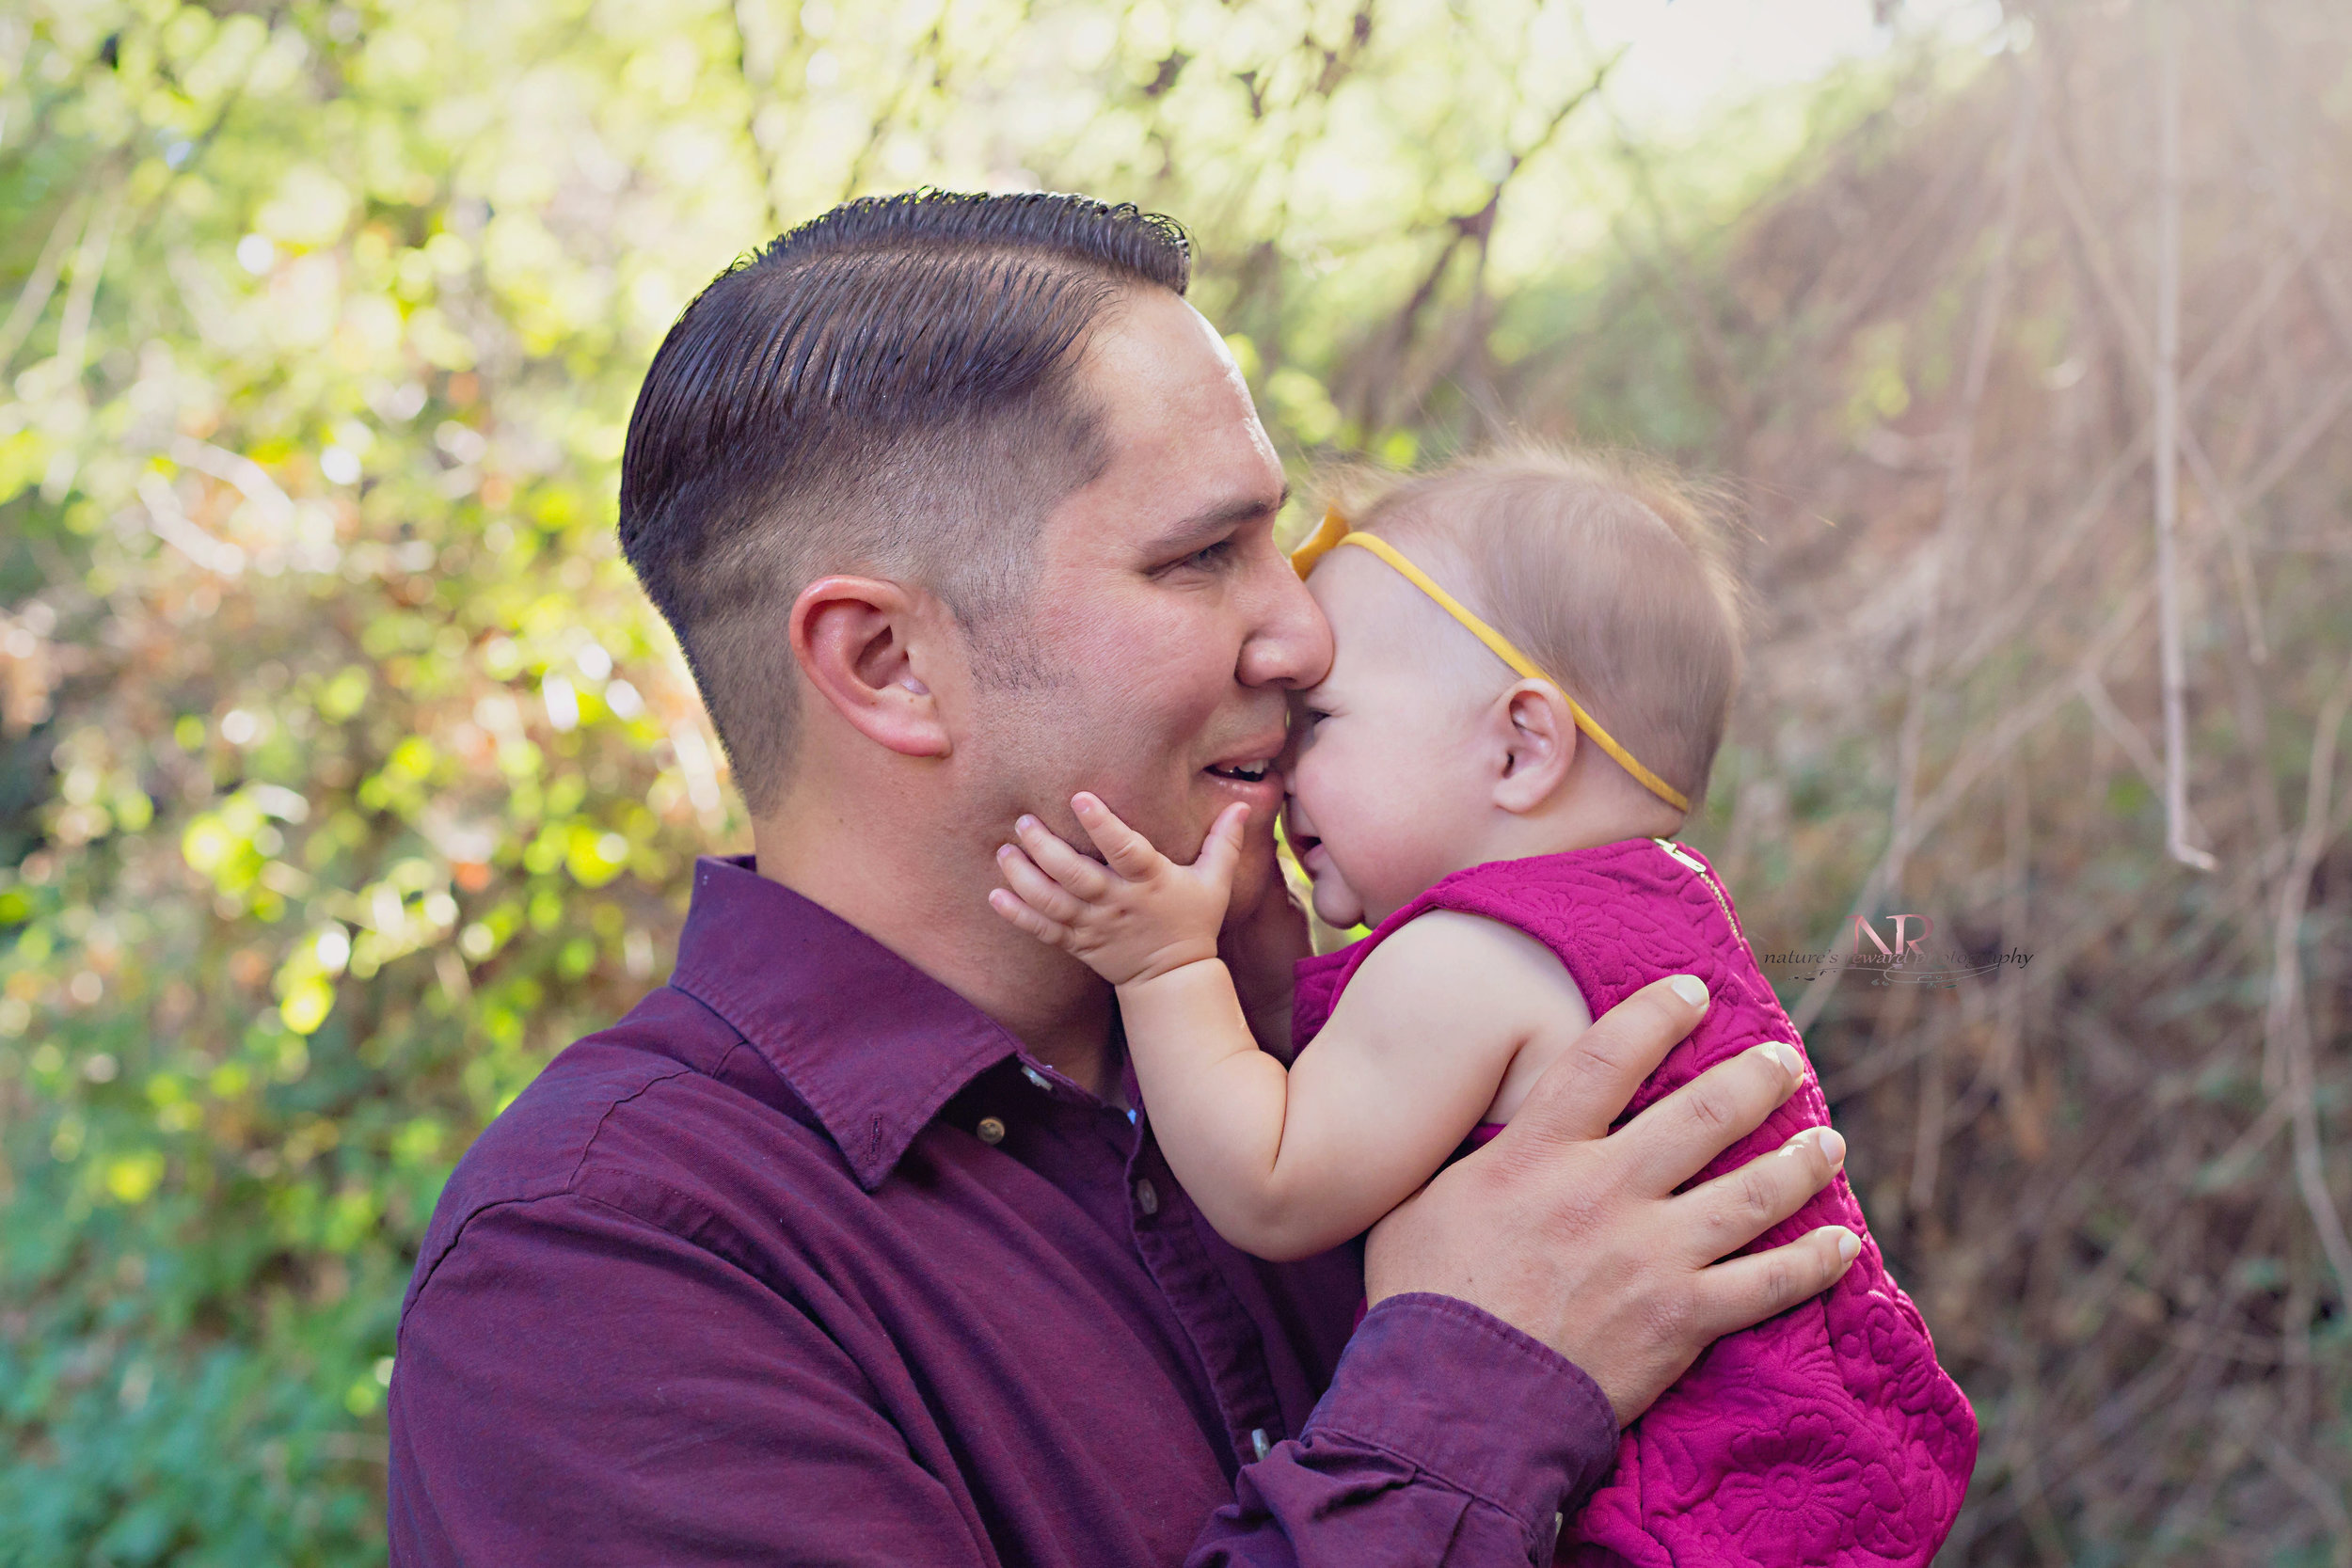 And then this little 6 month old girl loved on her daddy- and I grabbed the images. These are a treasure.